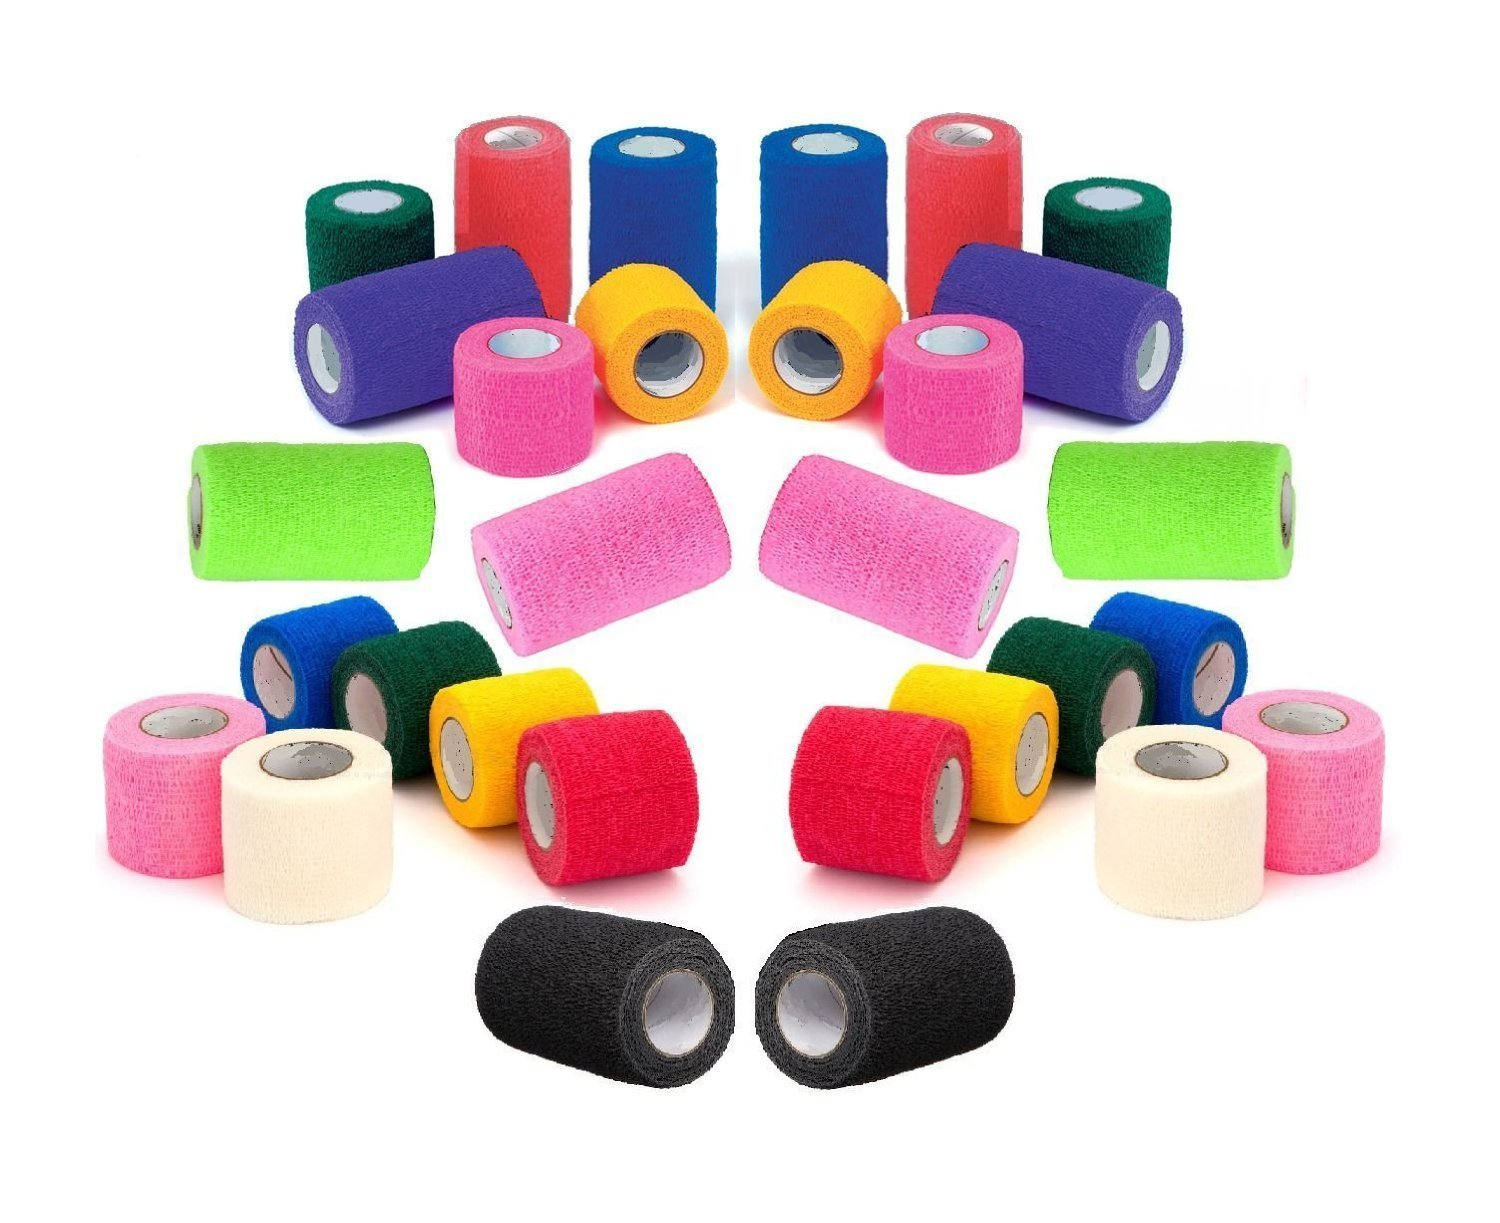 4 Inch Vet Wrap Tape Bulk (Assorted Colors) (6, 12, 18, or 24 Packs) Self-Adhesive Self Adherent Adhering Flex Bandage Rap Grip Roll for Dog Cat Pet Horse 71VUvbTSmJL